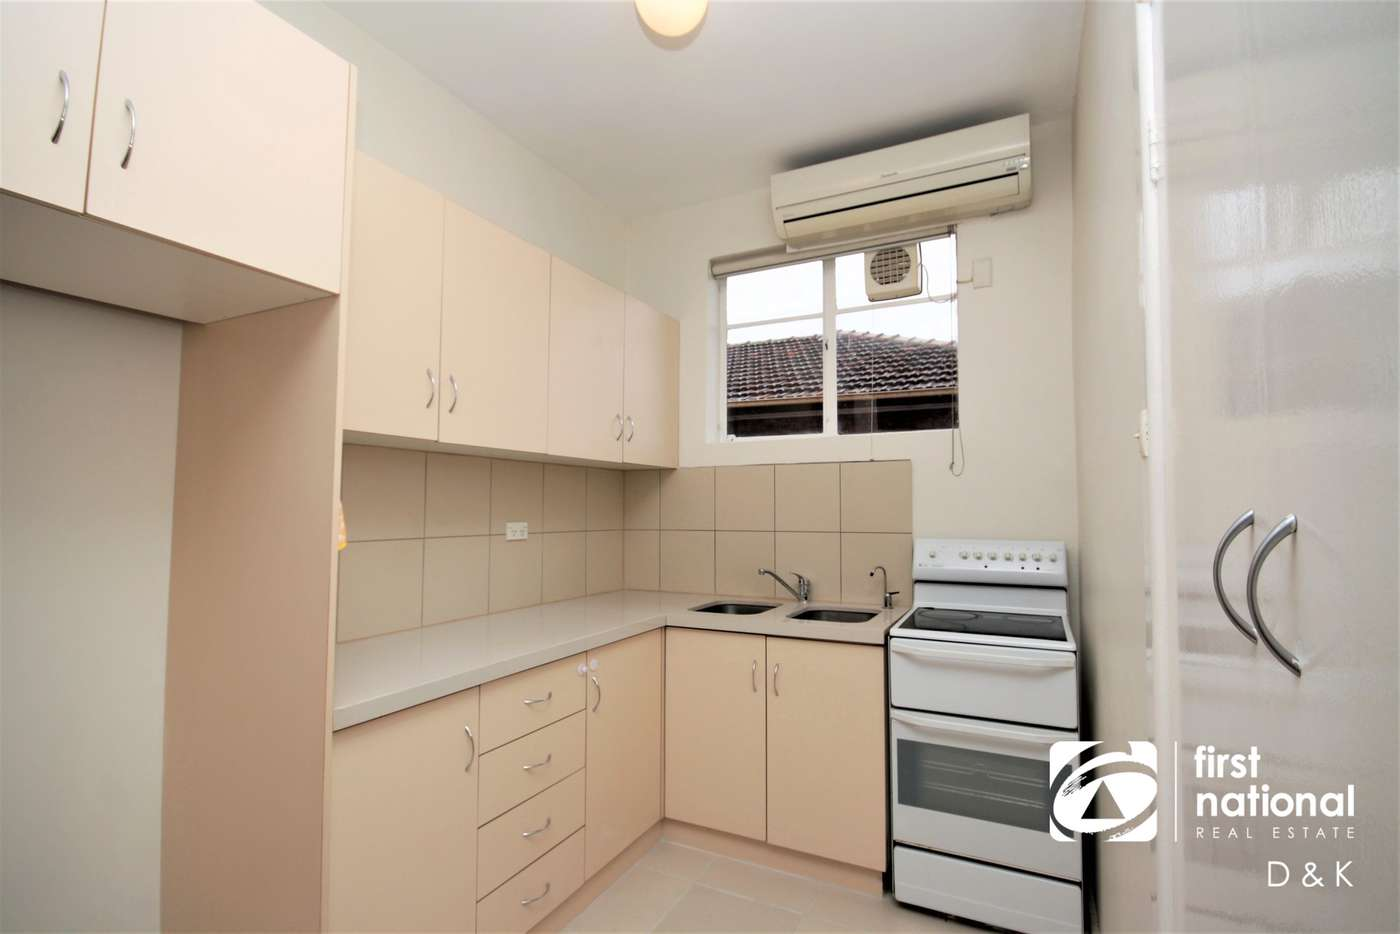 Seventh view of Homely apartment listing, 6/181 Geelong Road, Seddon VIC 3011